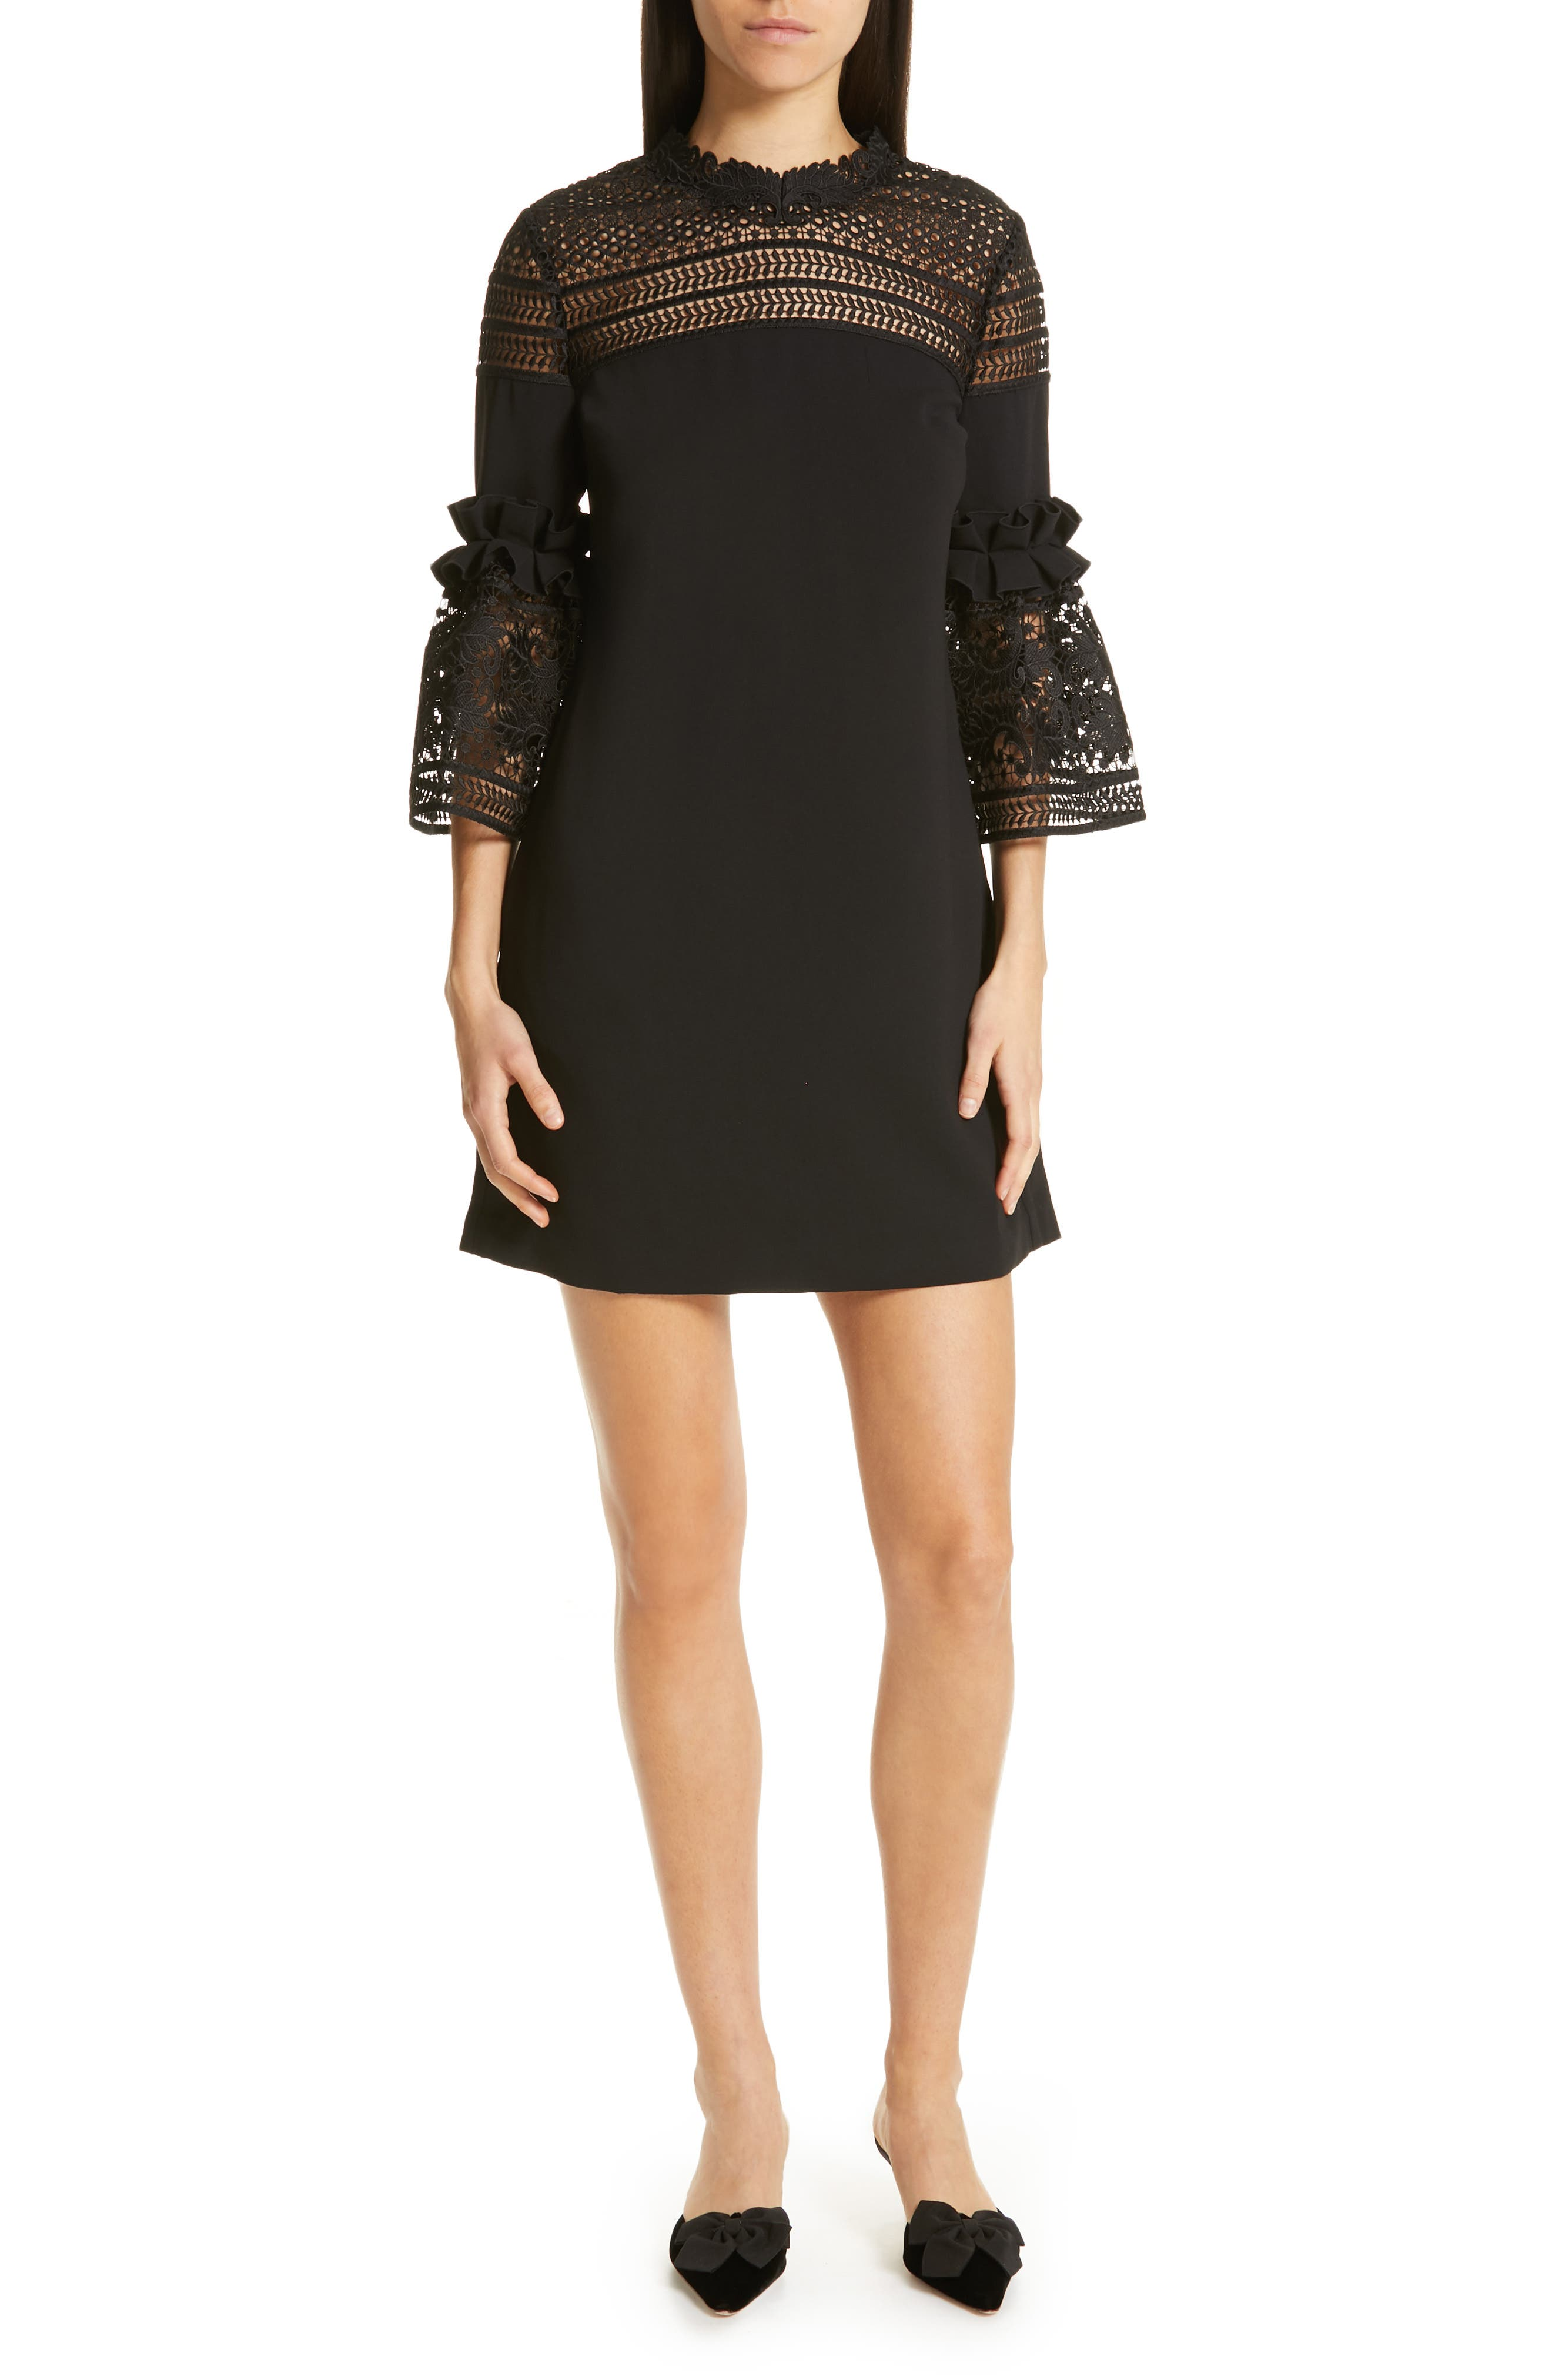 TED BAKER LONDON Lace Panel Bell Sleeve Tunic Dress, Main, color, BLACK